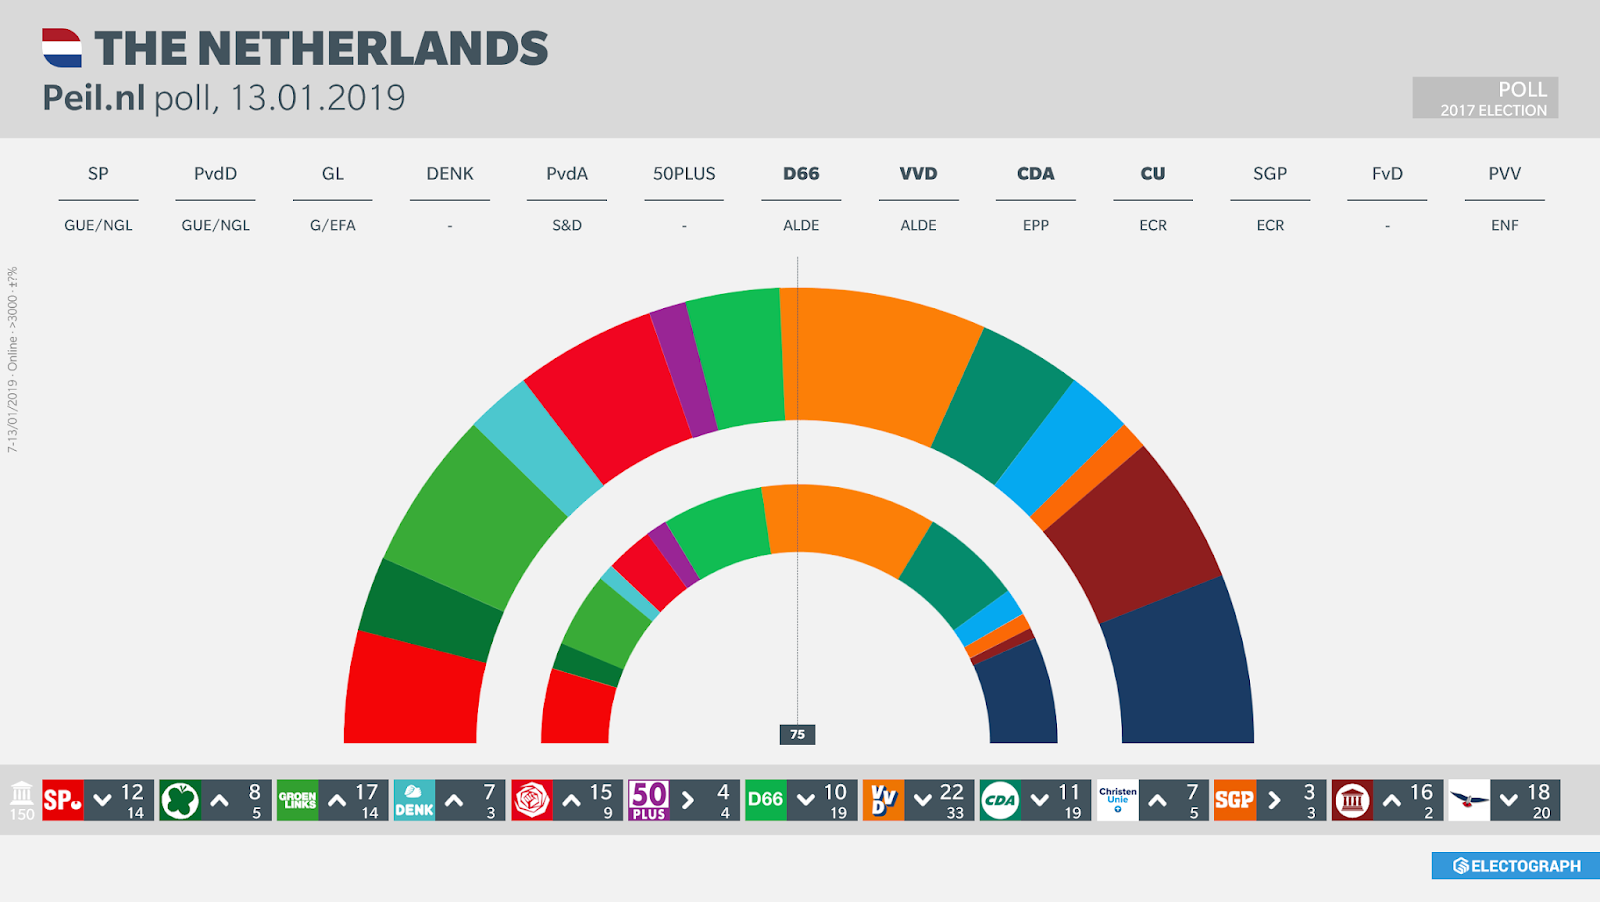 THE NETHERLANDS: Peil.nl poll chart, 13 January 2019